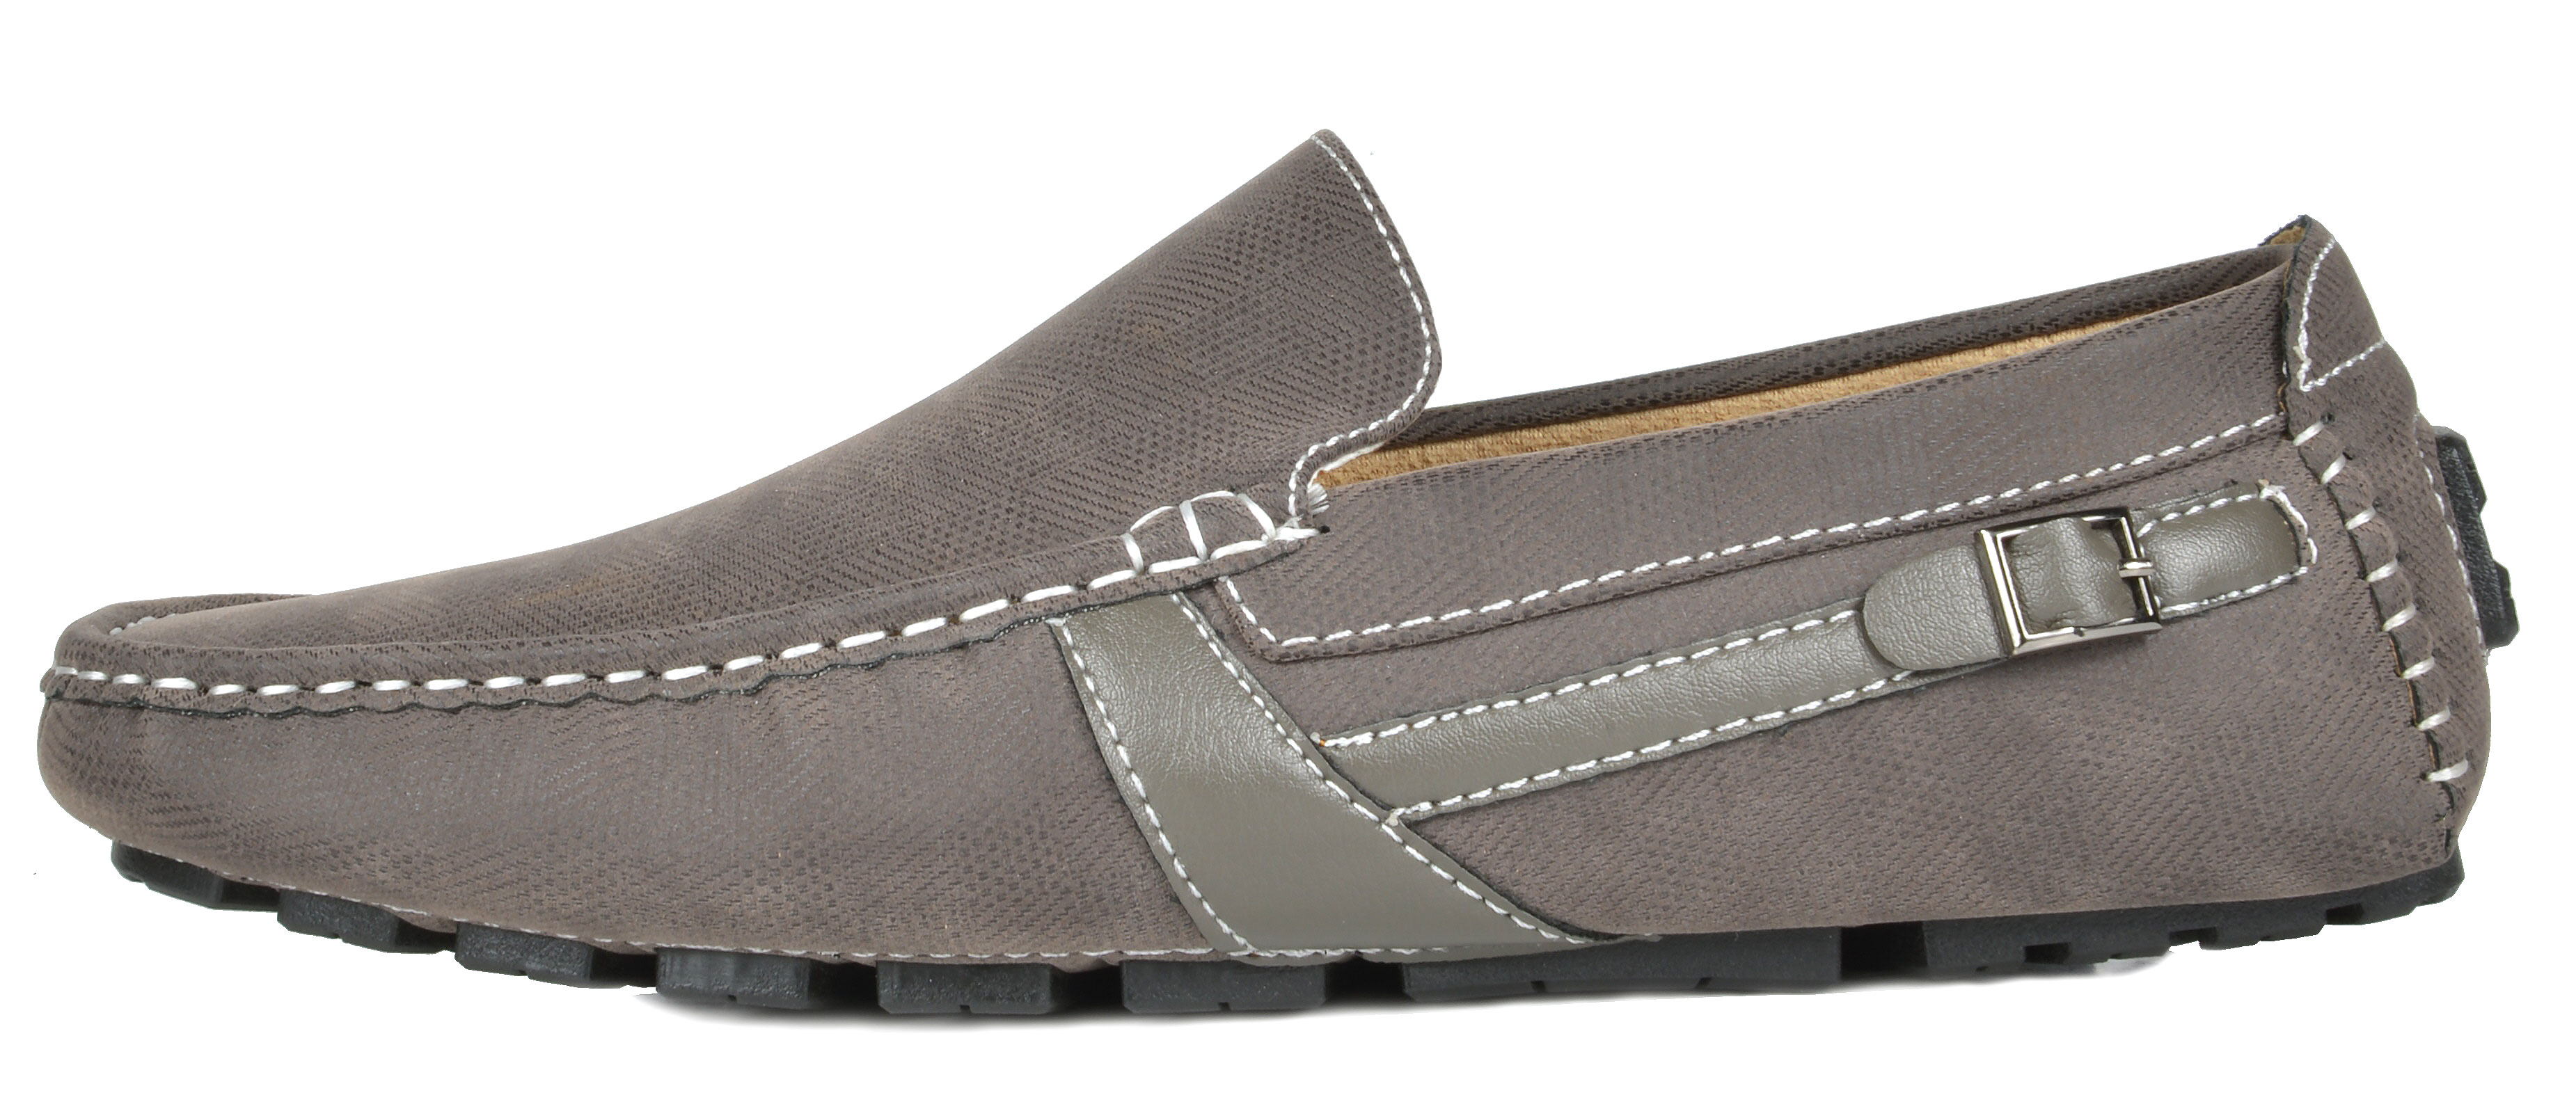 Bruno-Marc-Men-039-s-New-Classic-Fashion-Slip-on-Driving-Casual-Loafers-Boat-Shoes thumbnail 127